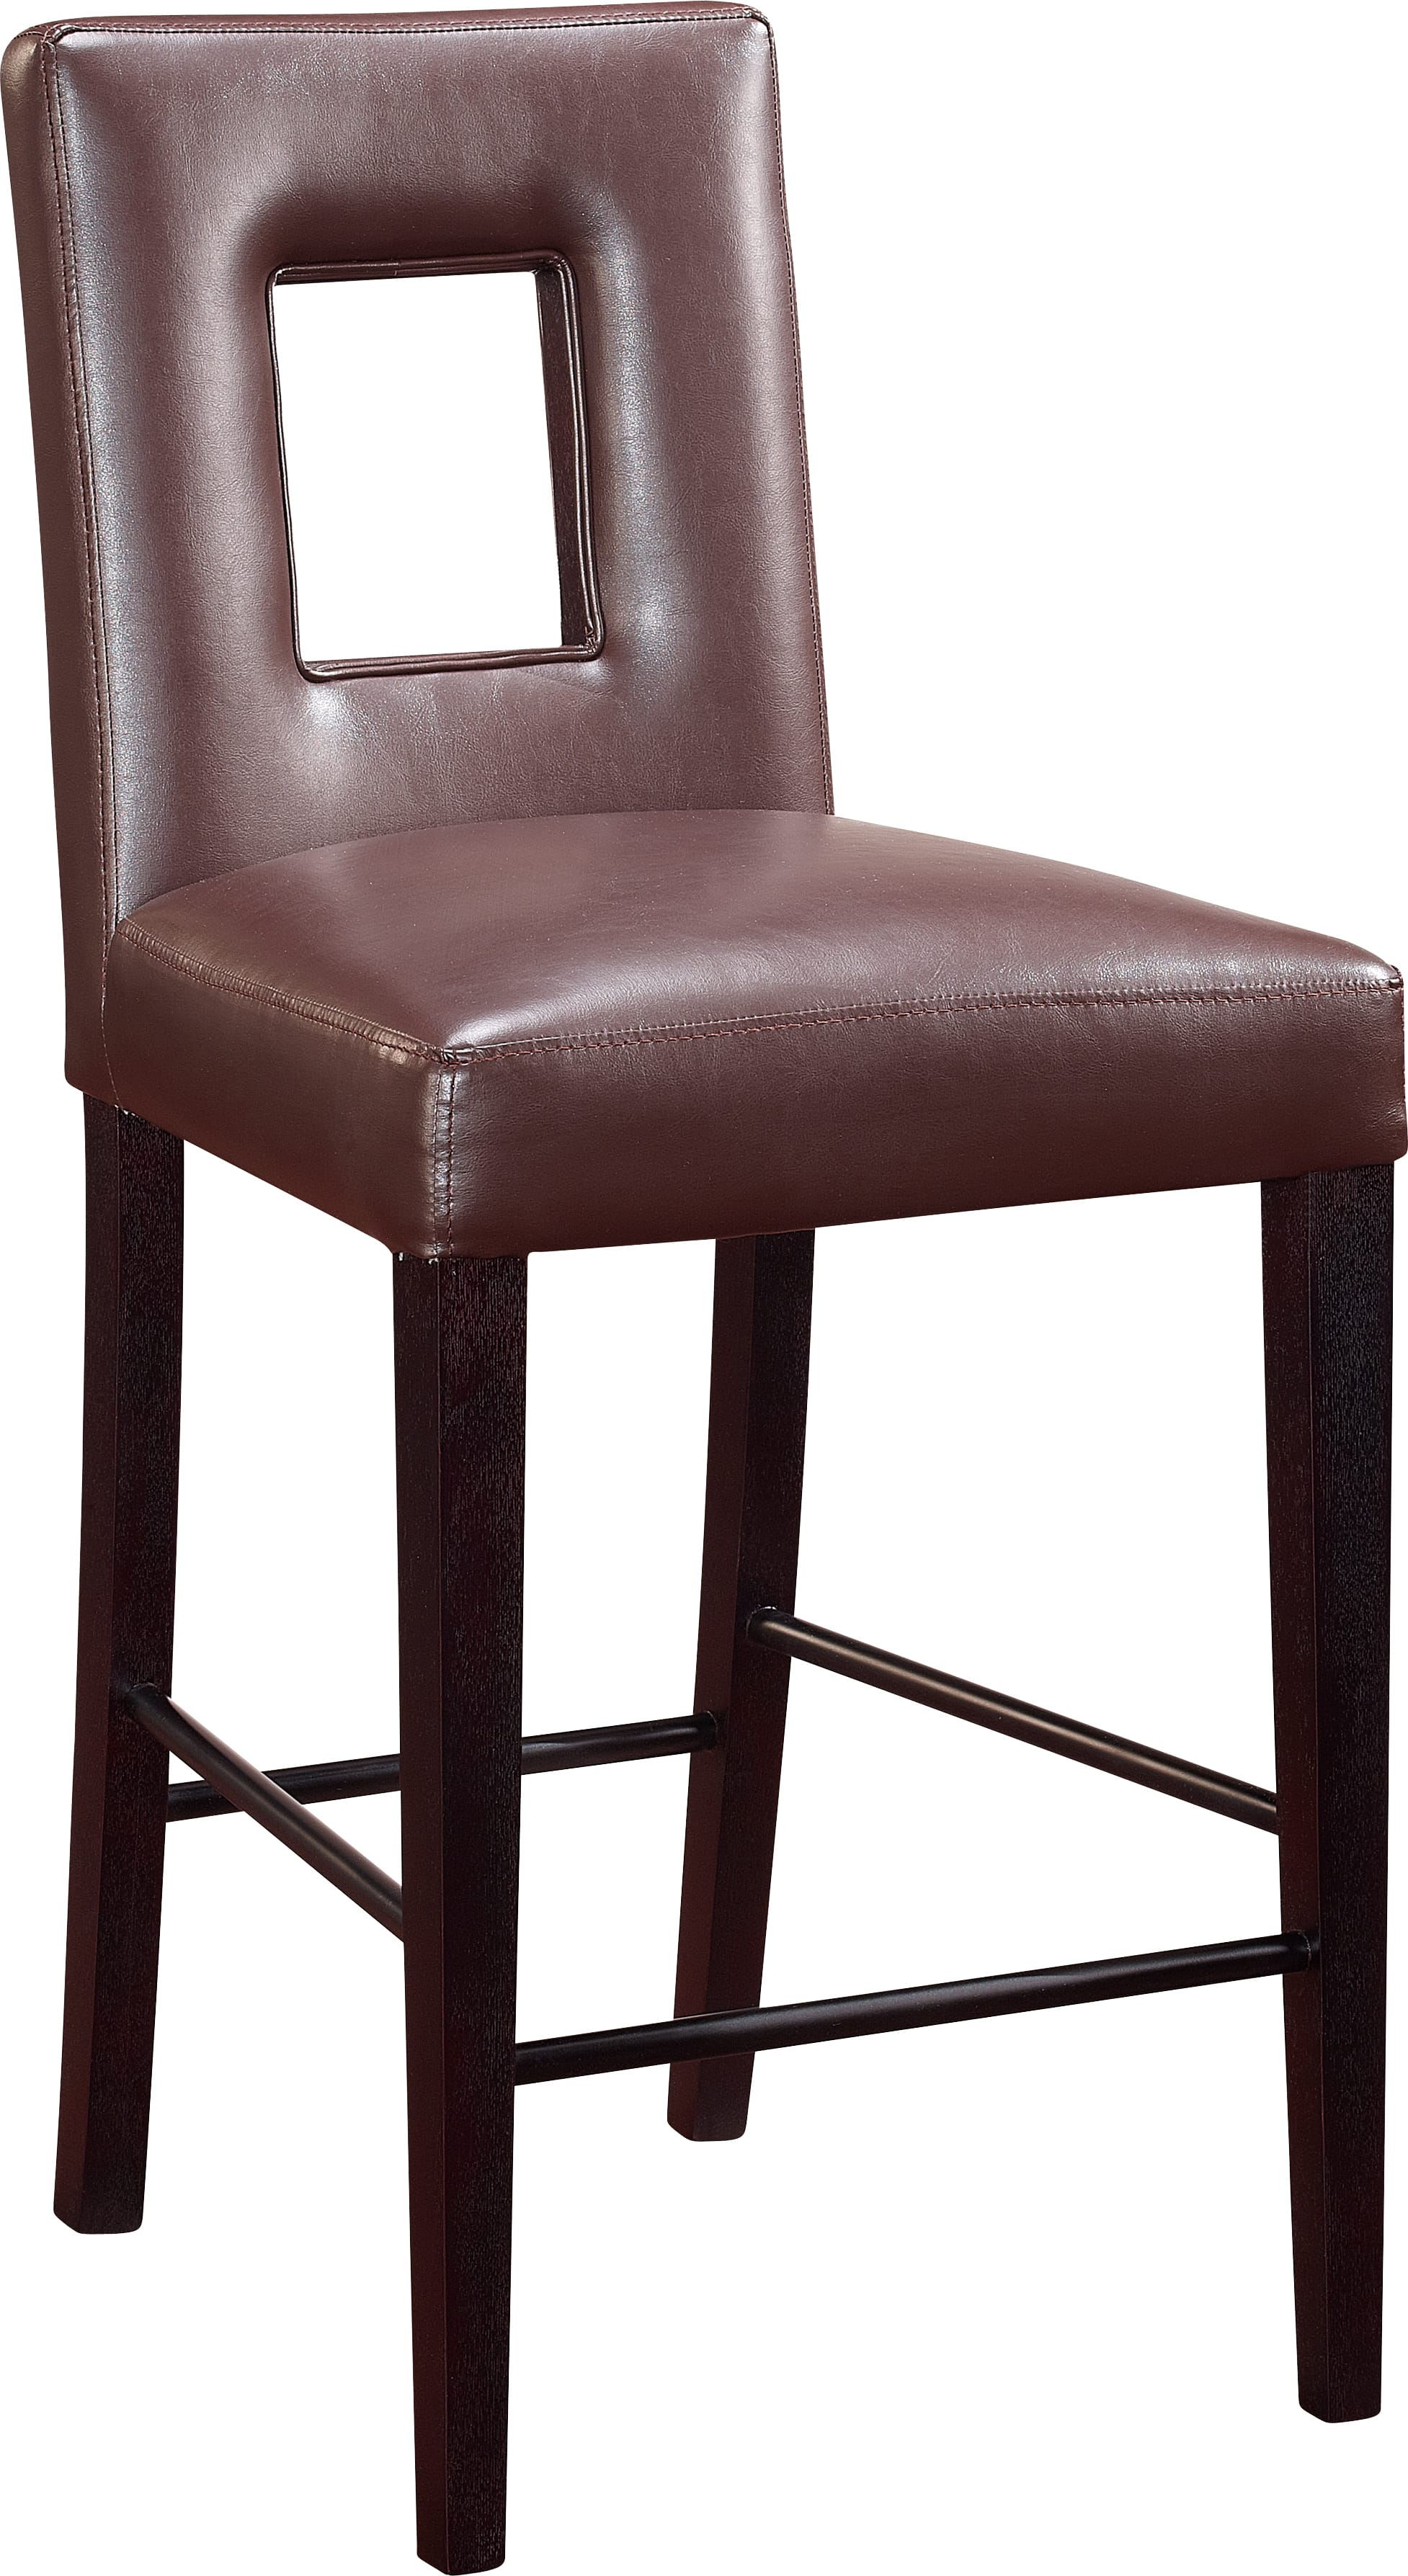 Bar Stool Dg072 Brown Set Of 2 By Global Furniture